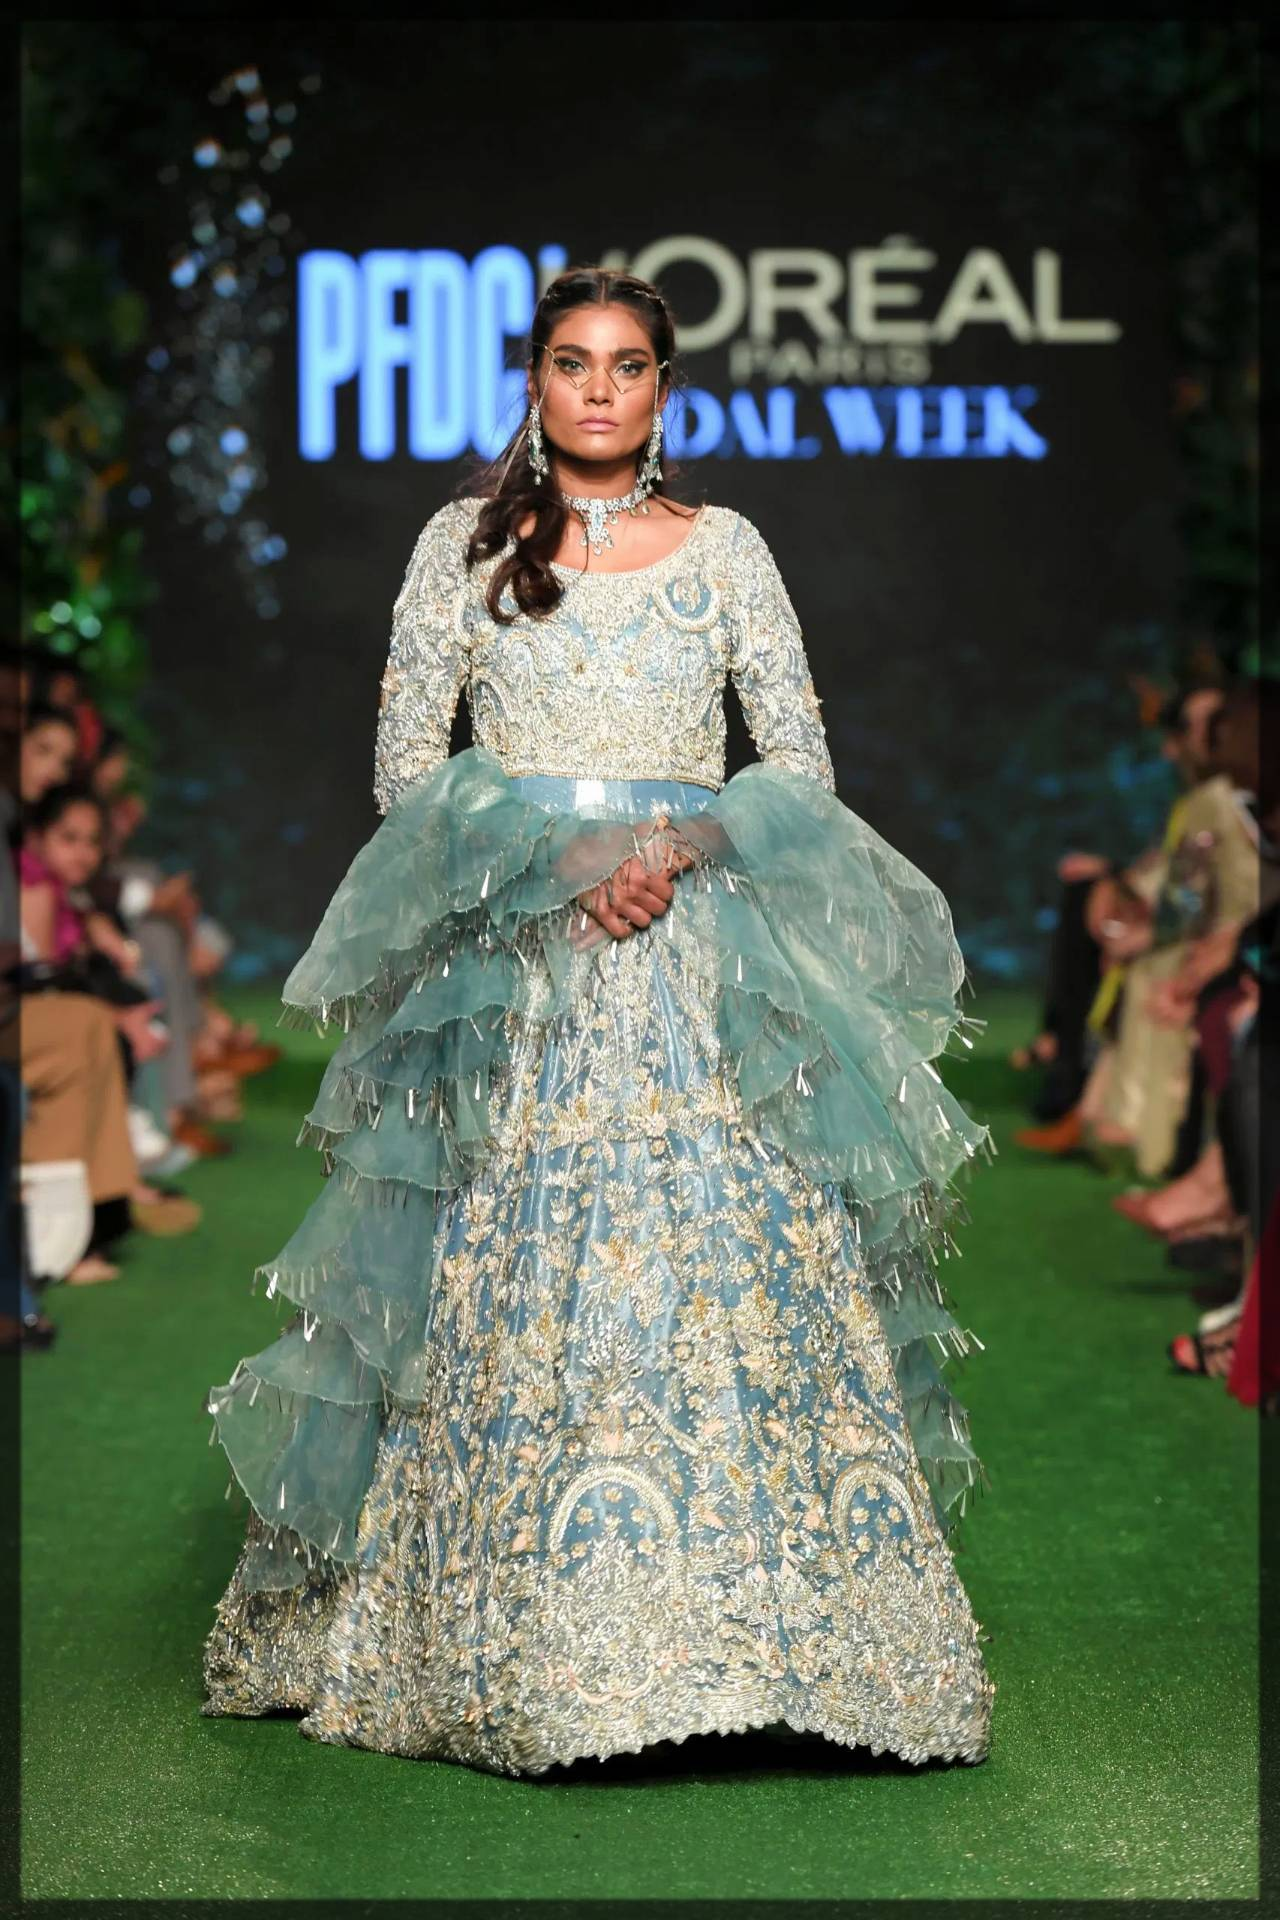 ahmed sultan bridal collection - PLBW'19